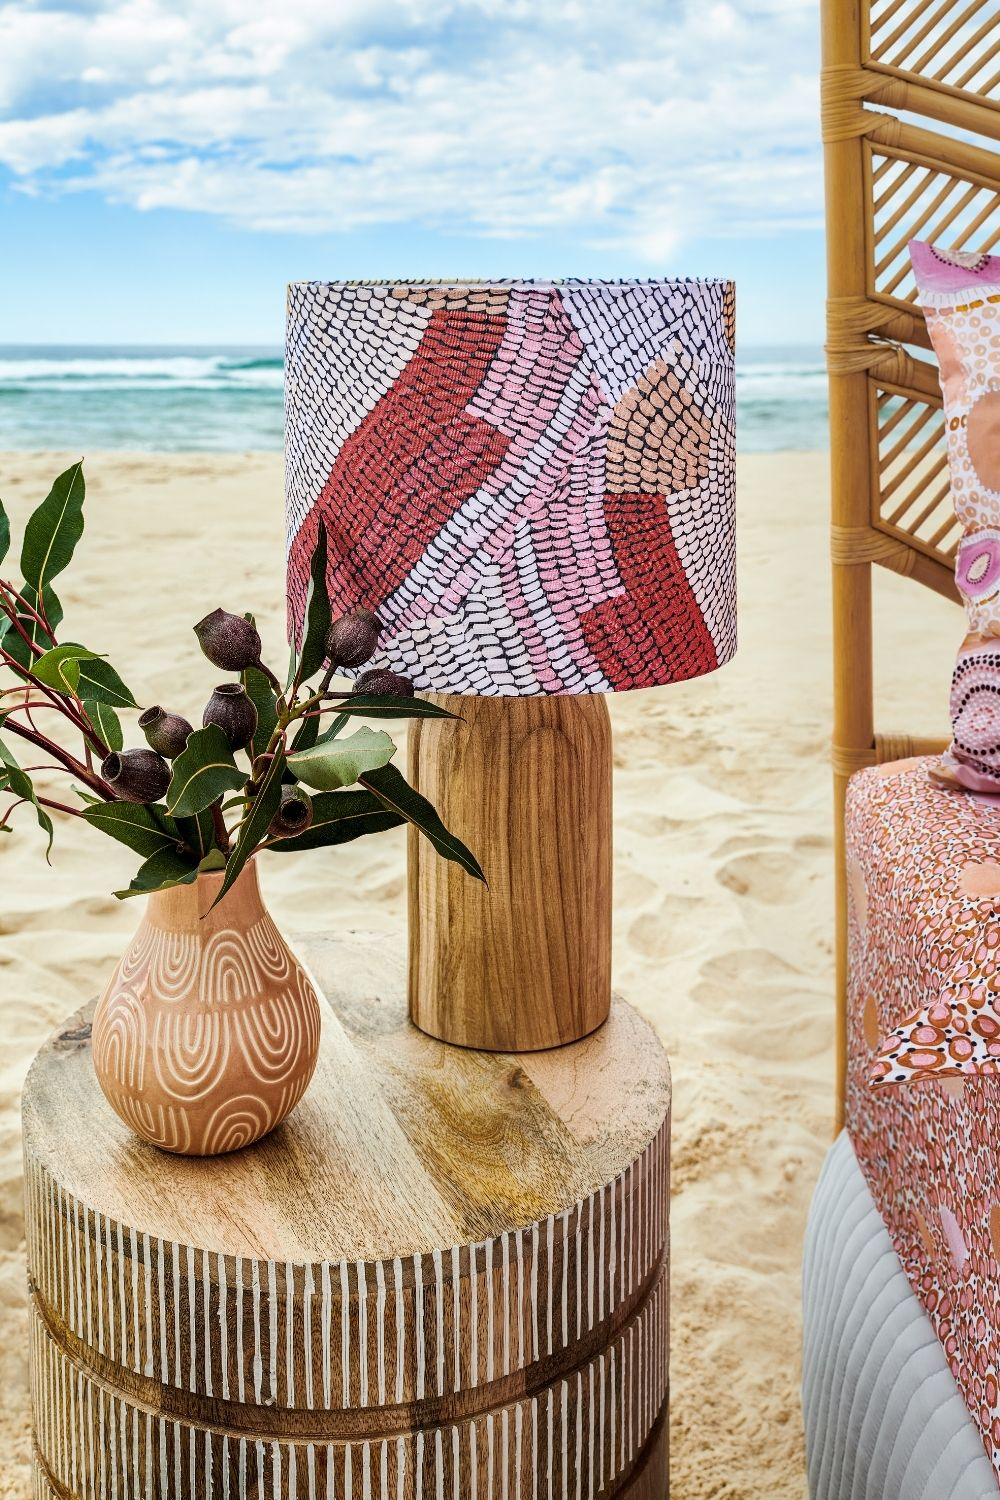 Adairs Collaborate With Artists Miimi And Jiinda On Homeware Range Better Homes And Gardens